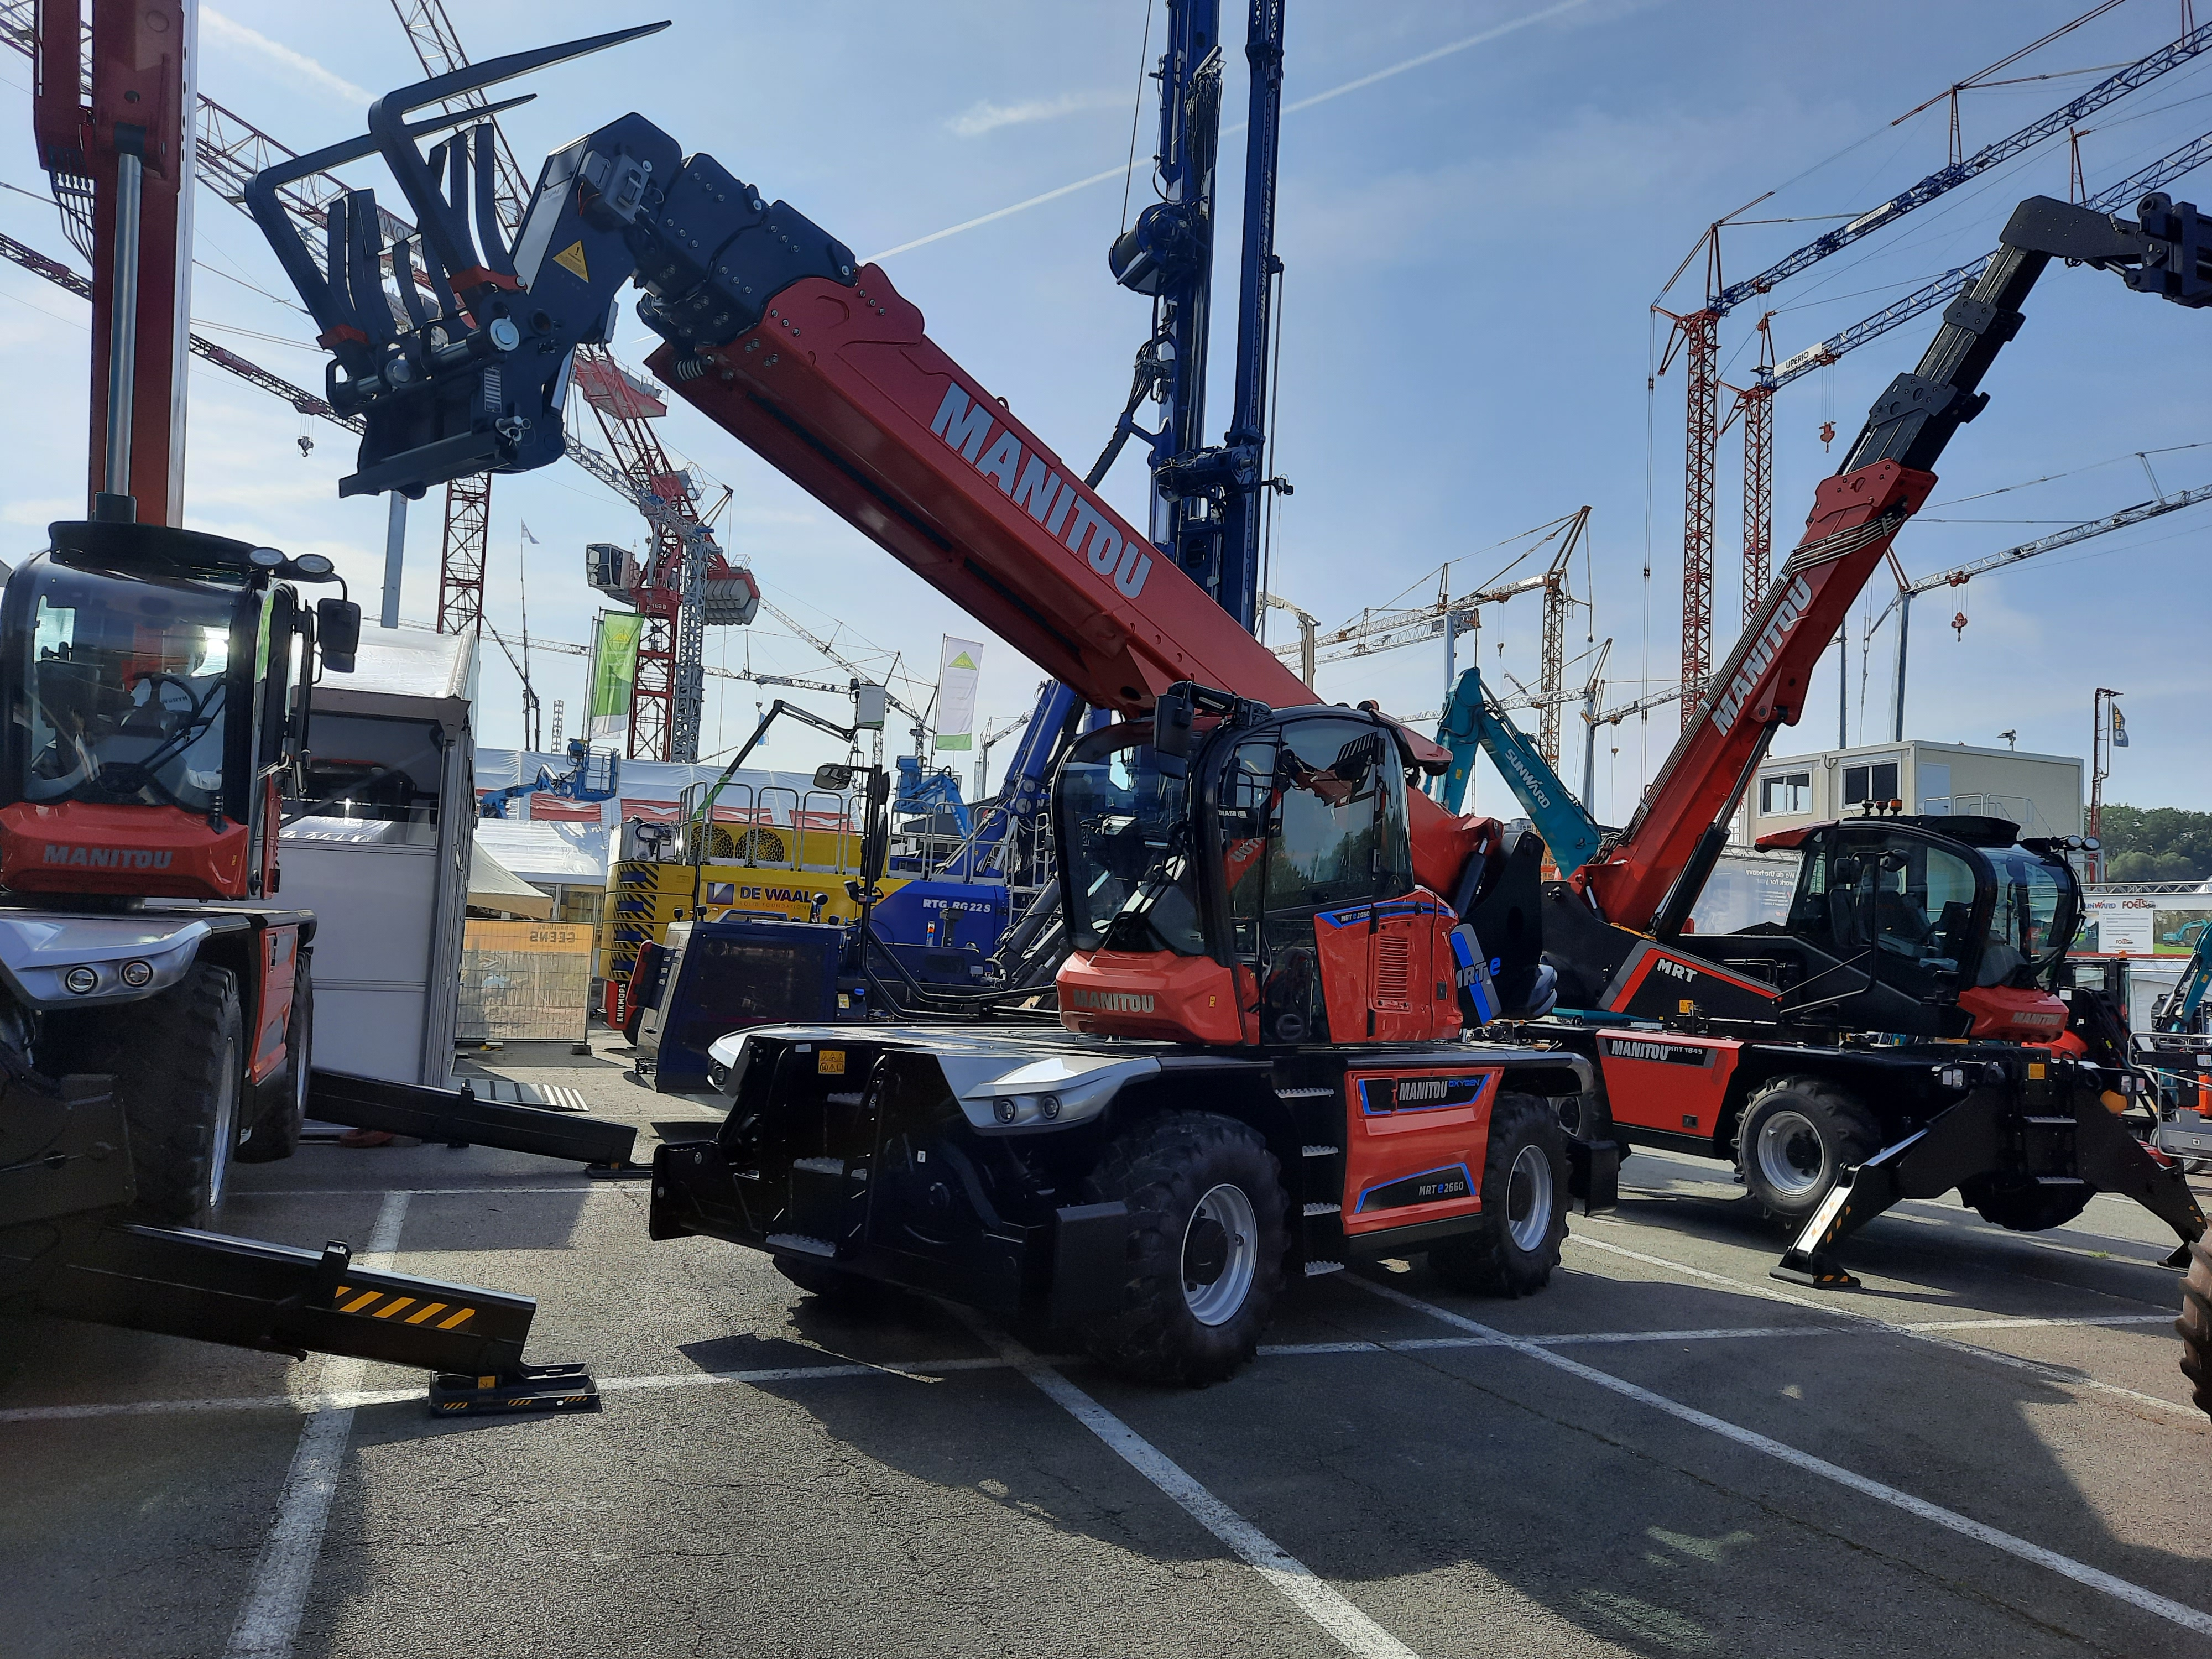 The new 100% electric MRT 2260 model on display at Matexpo!